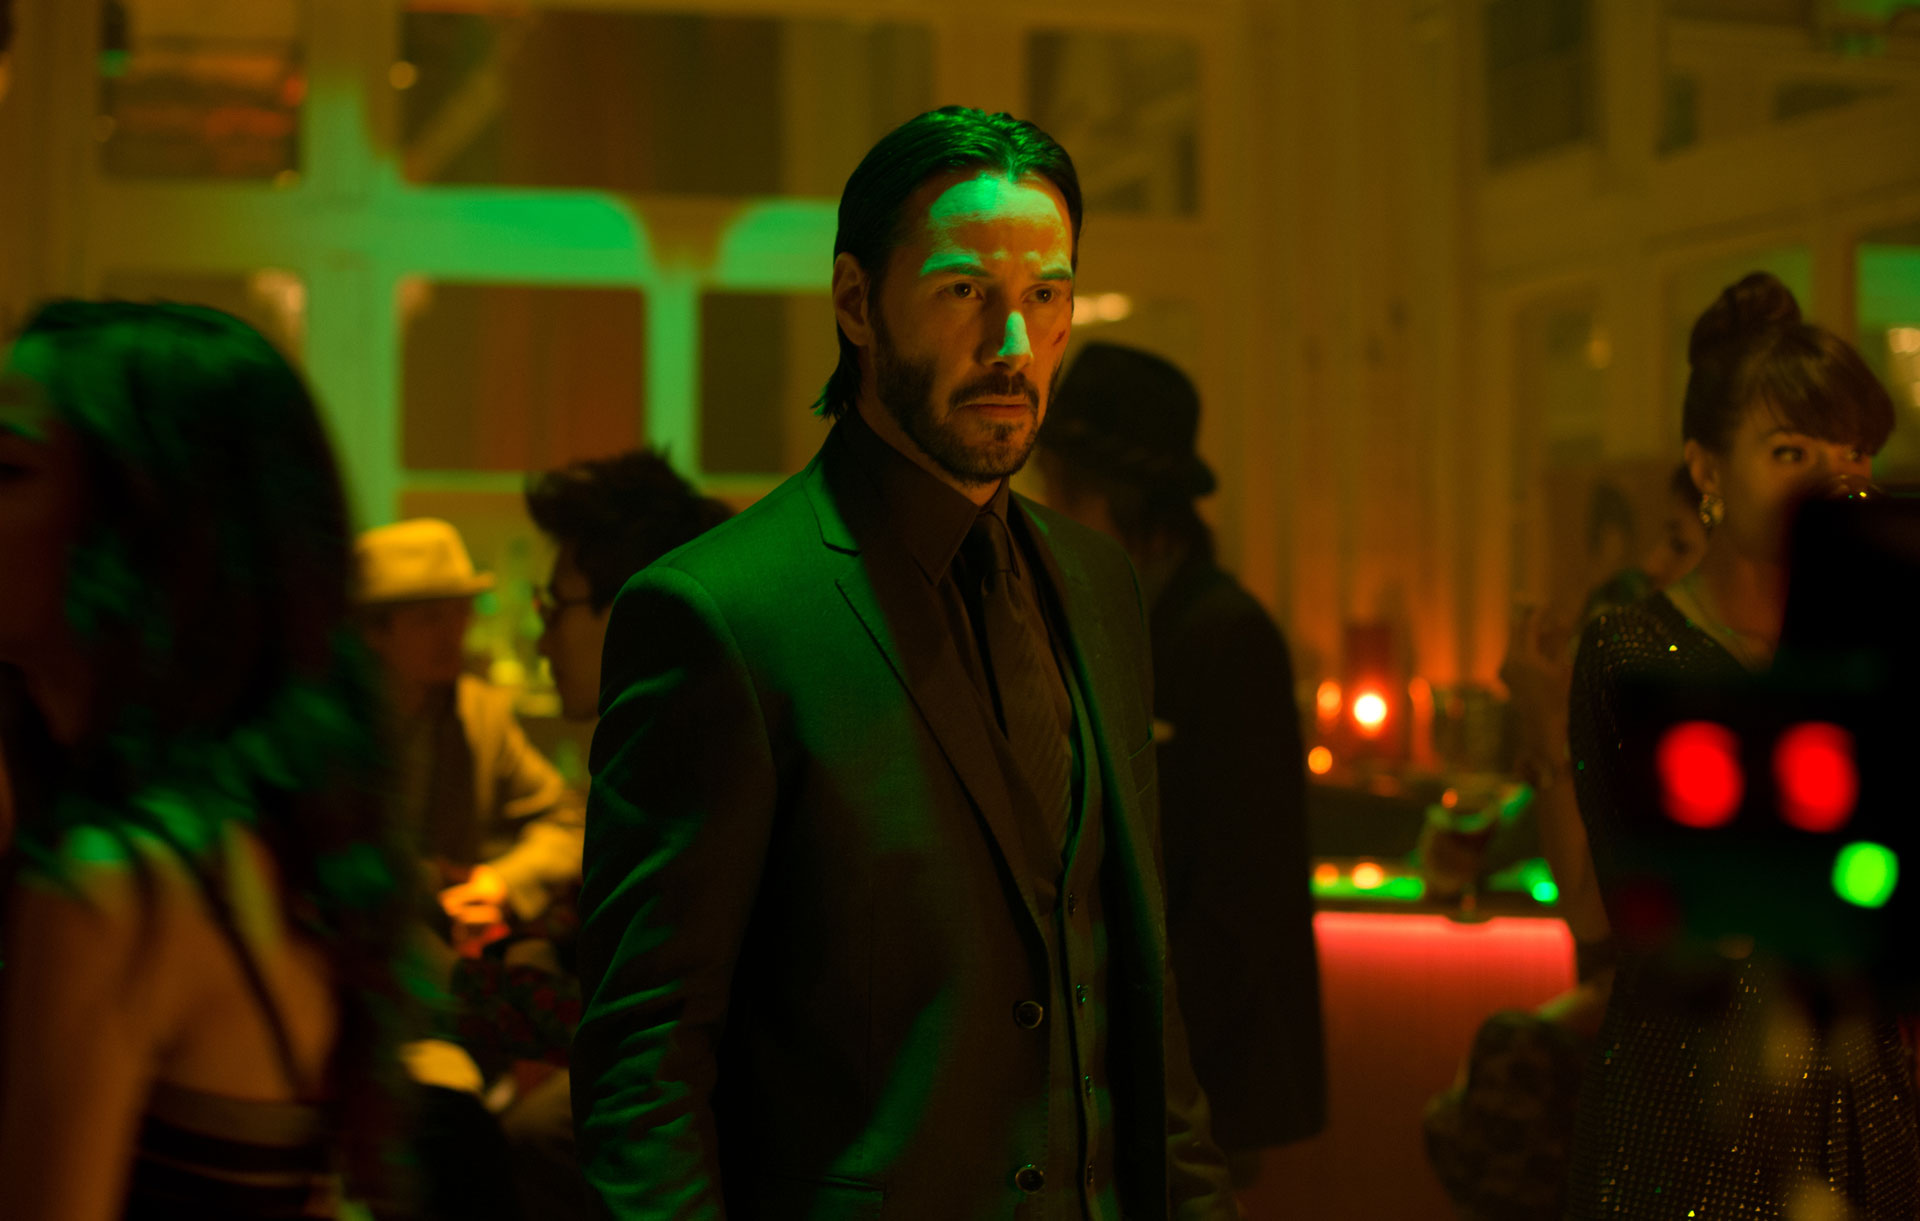 Keanu Reeves in John Wick.